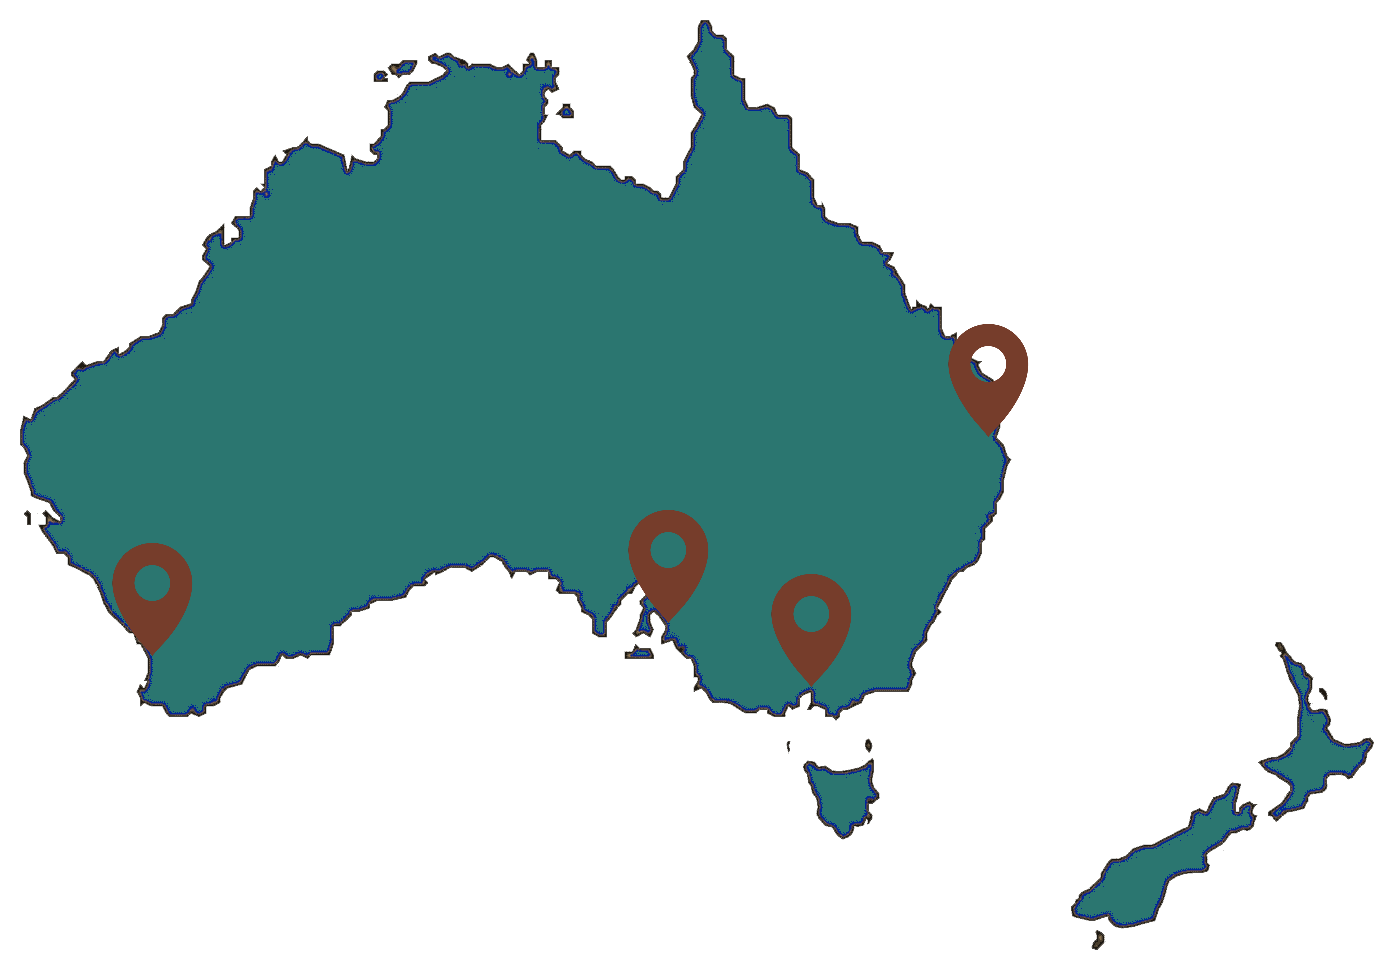 Greenfern office locations around Australia